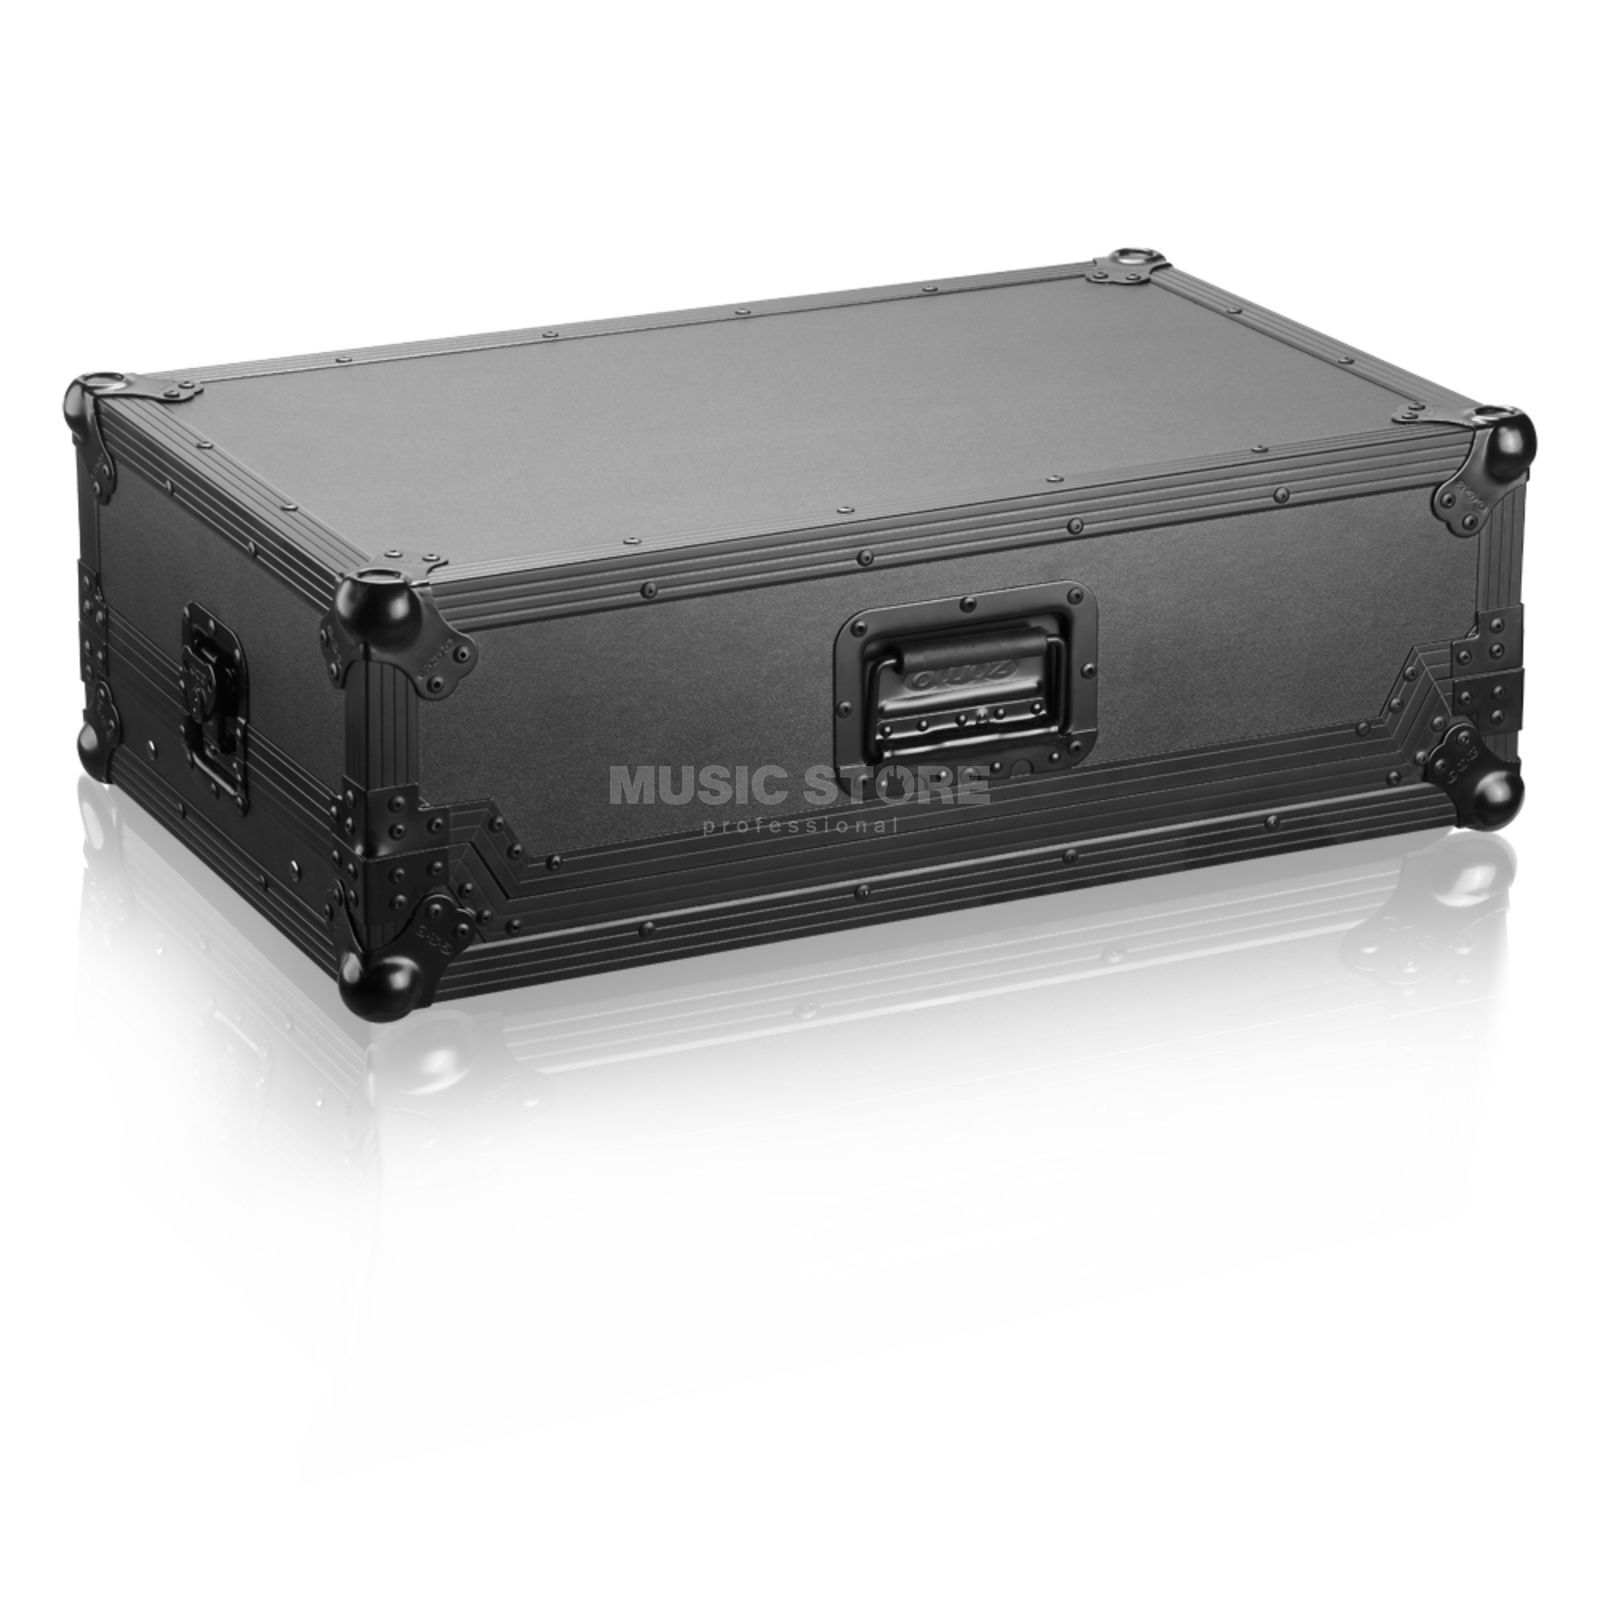 Zomo P-XDJ-R1 PLUS NSE Case for XDJ-R1 + Laptop Product Image